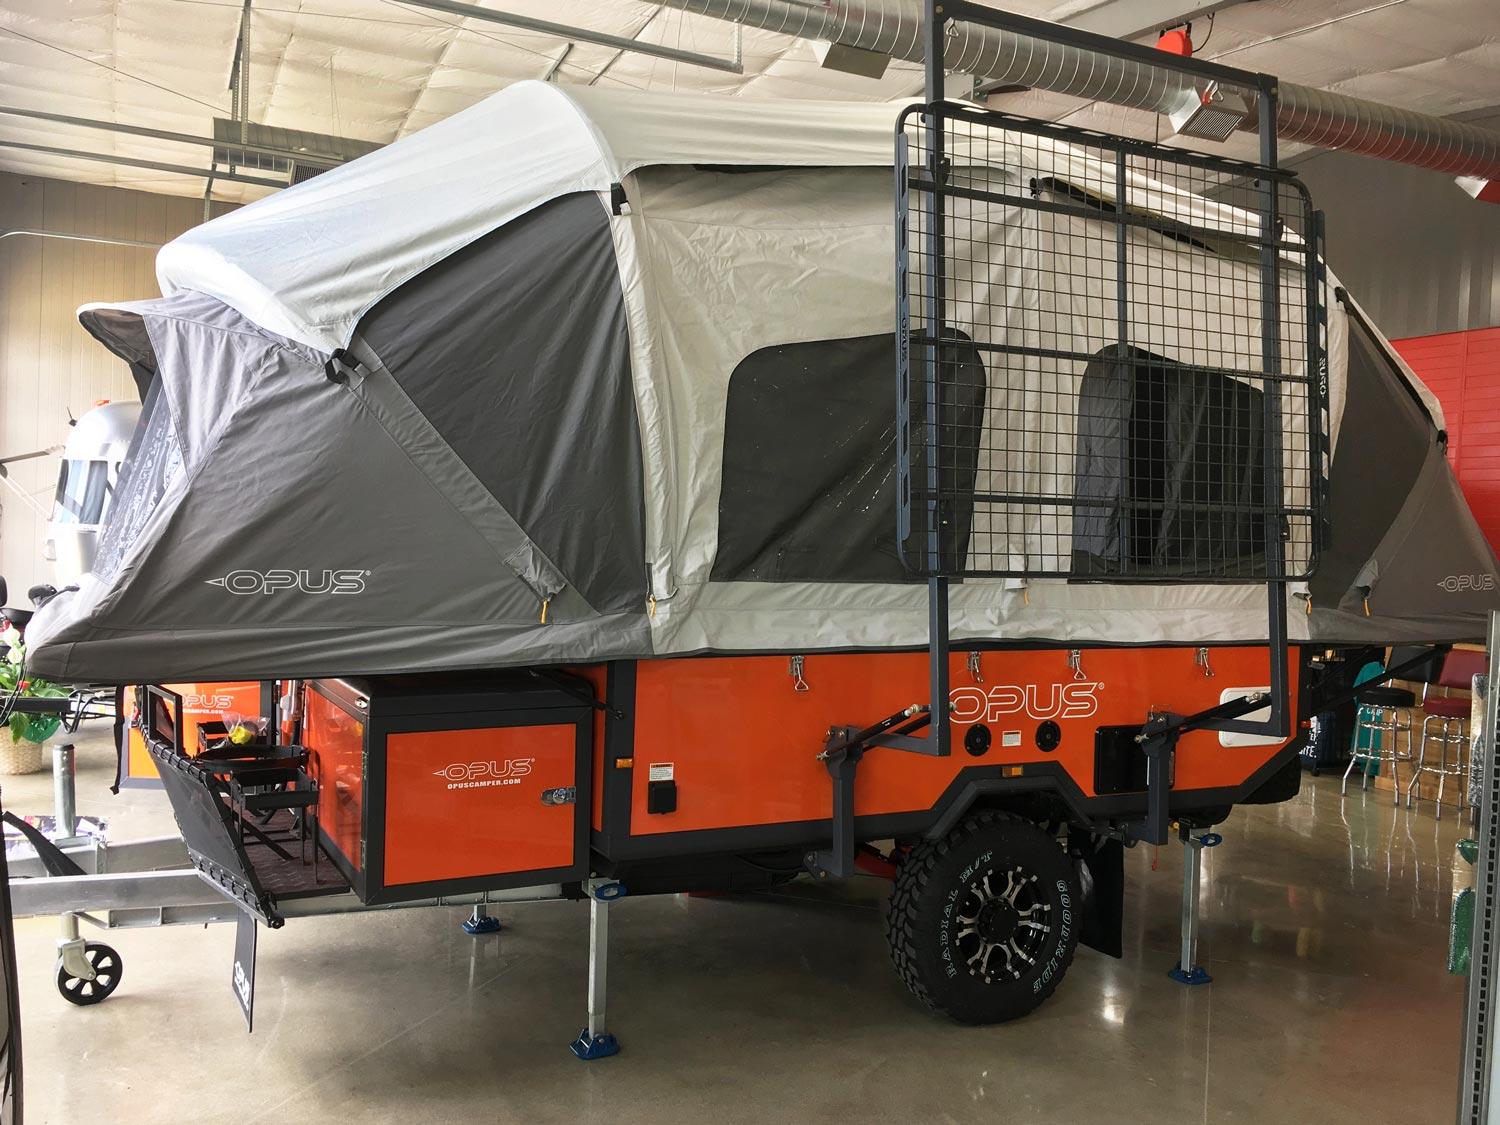 2020 Air Opus Off Road 4 Sleeper Rk 772044 Adventure Campers